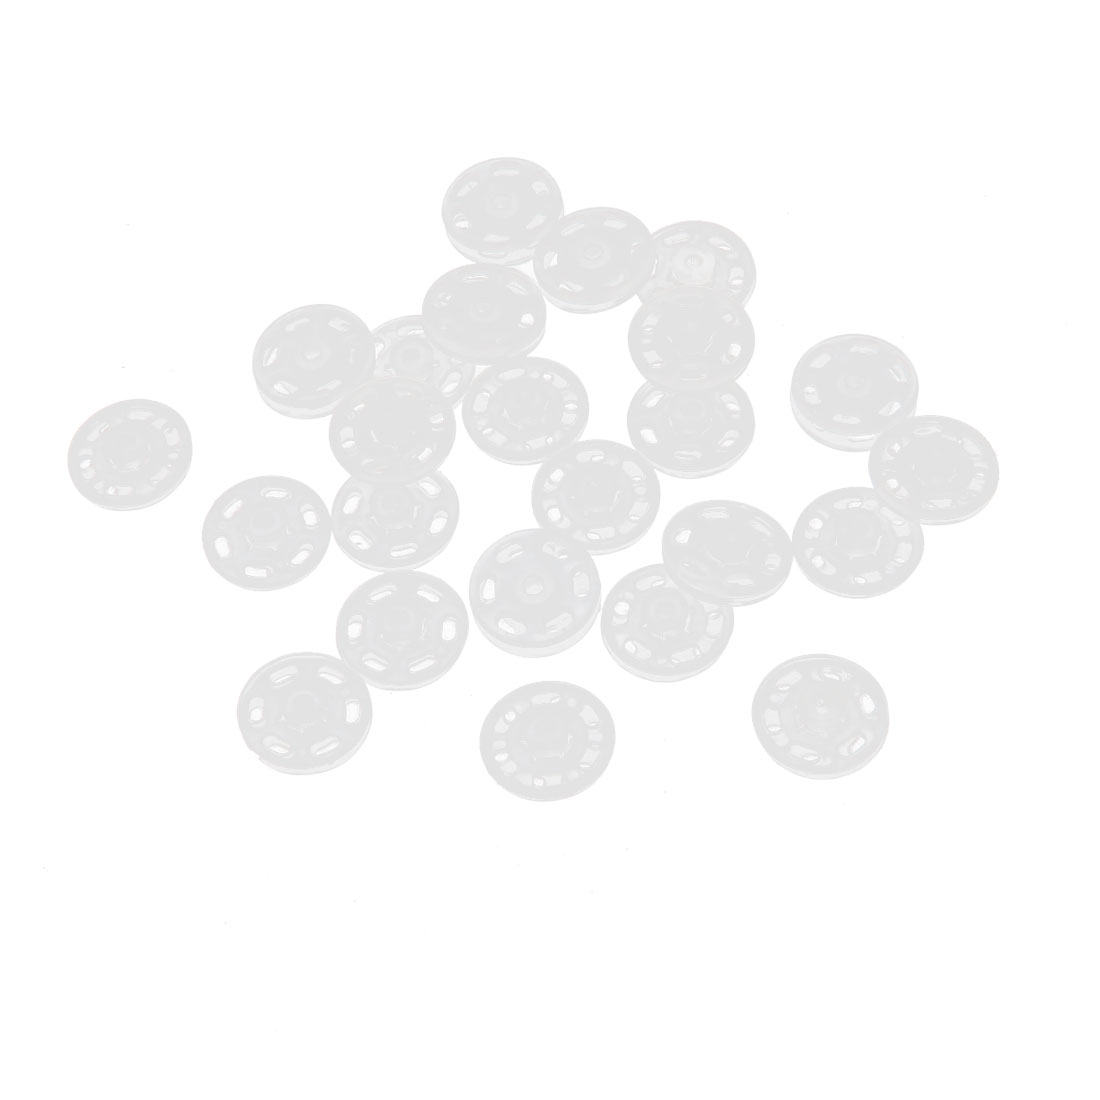 Clothes Replacement Parts Plastic Press Fastener Buttons White 24Pcs